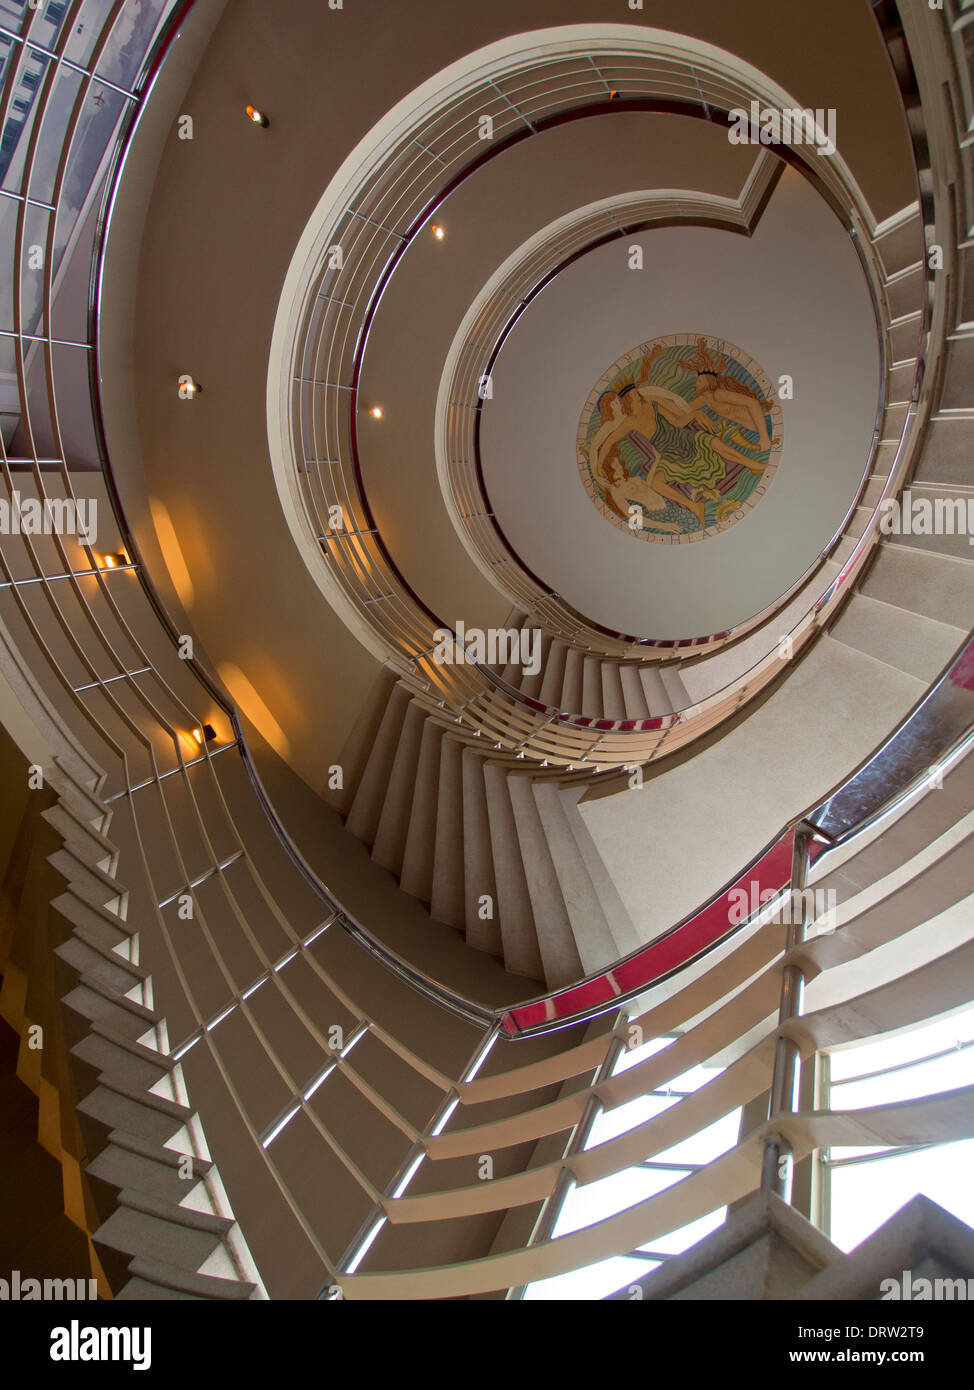 A Grand Spiral Stair In Art Deco Style Leads Up Towards A Ceiling Which  Bears An Original Eric Gill Painted Bas Relief Sculpture